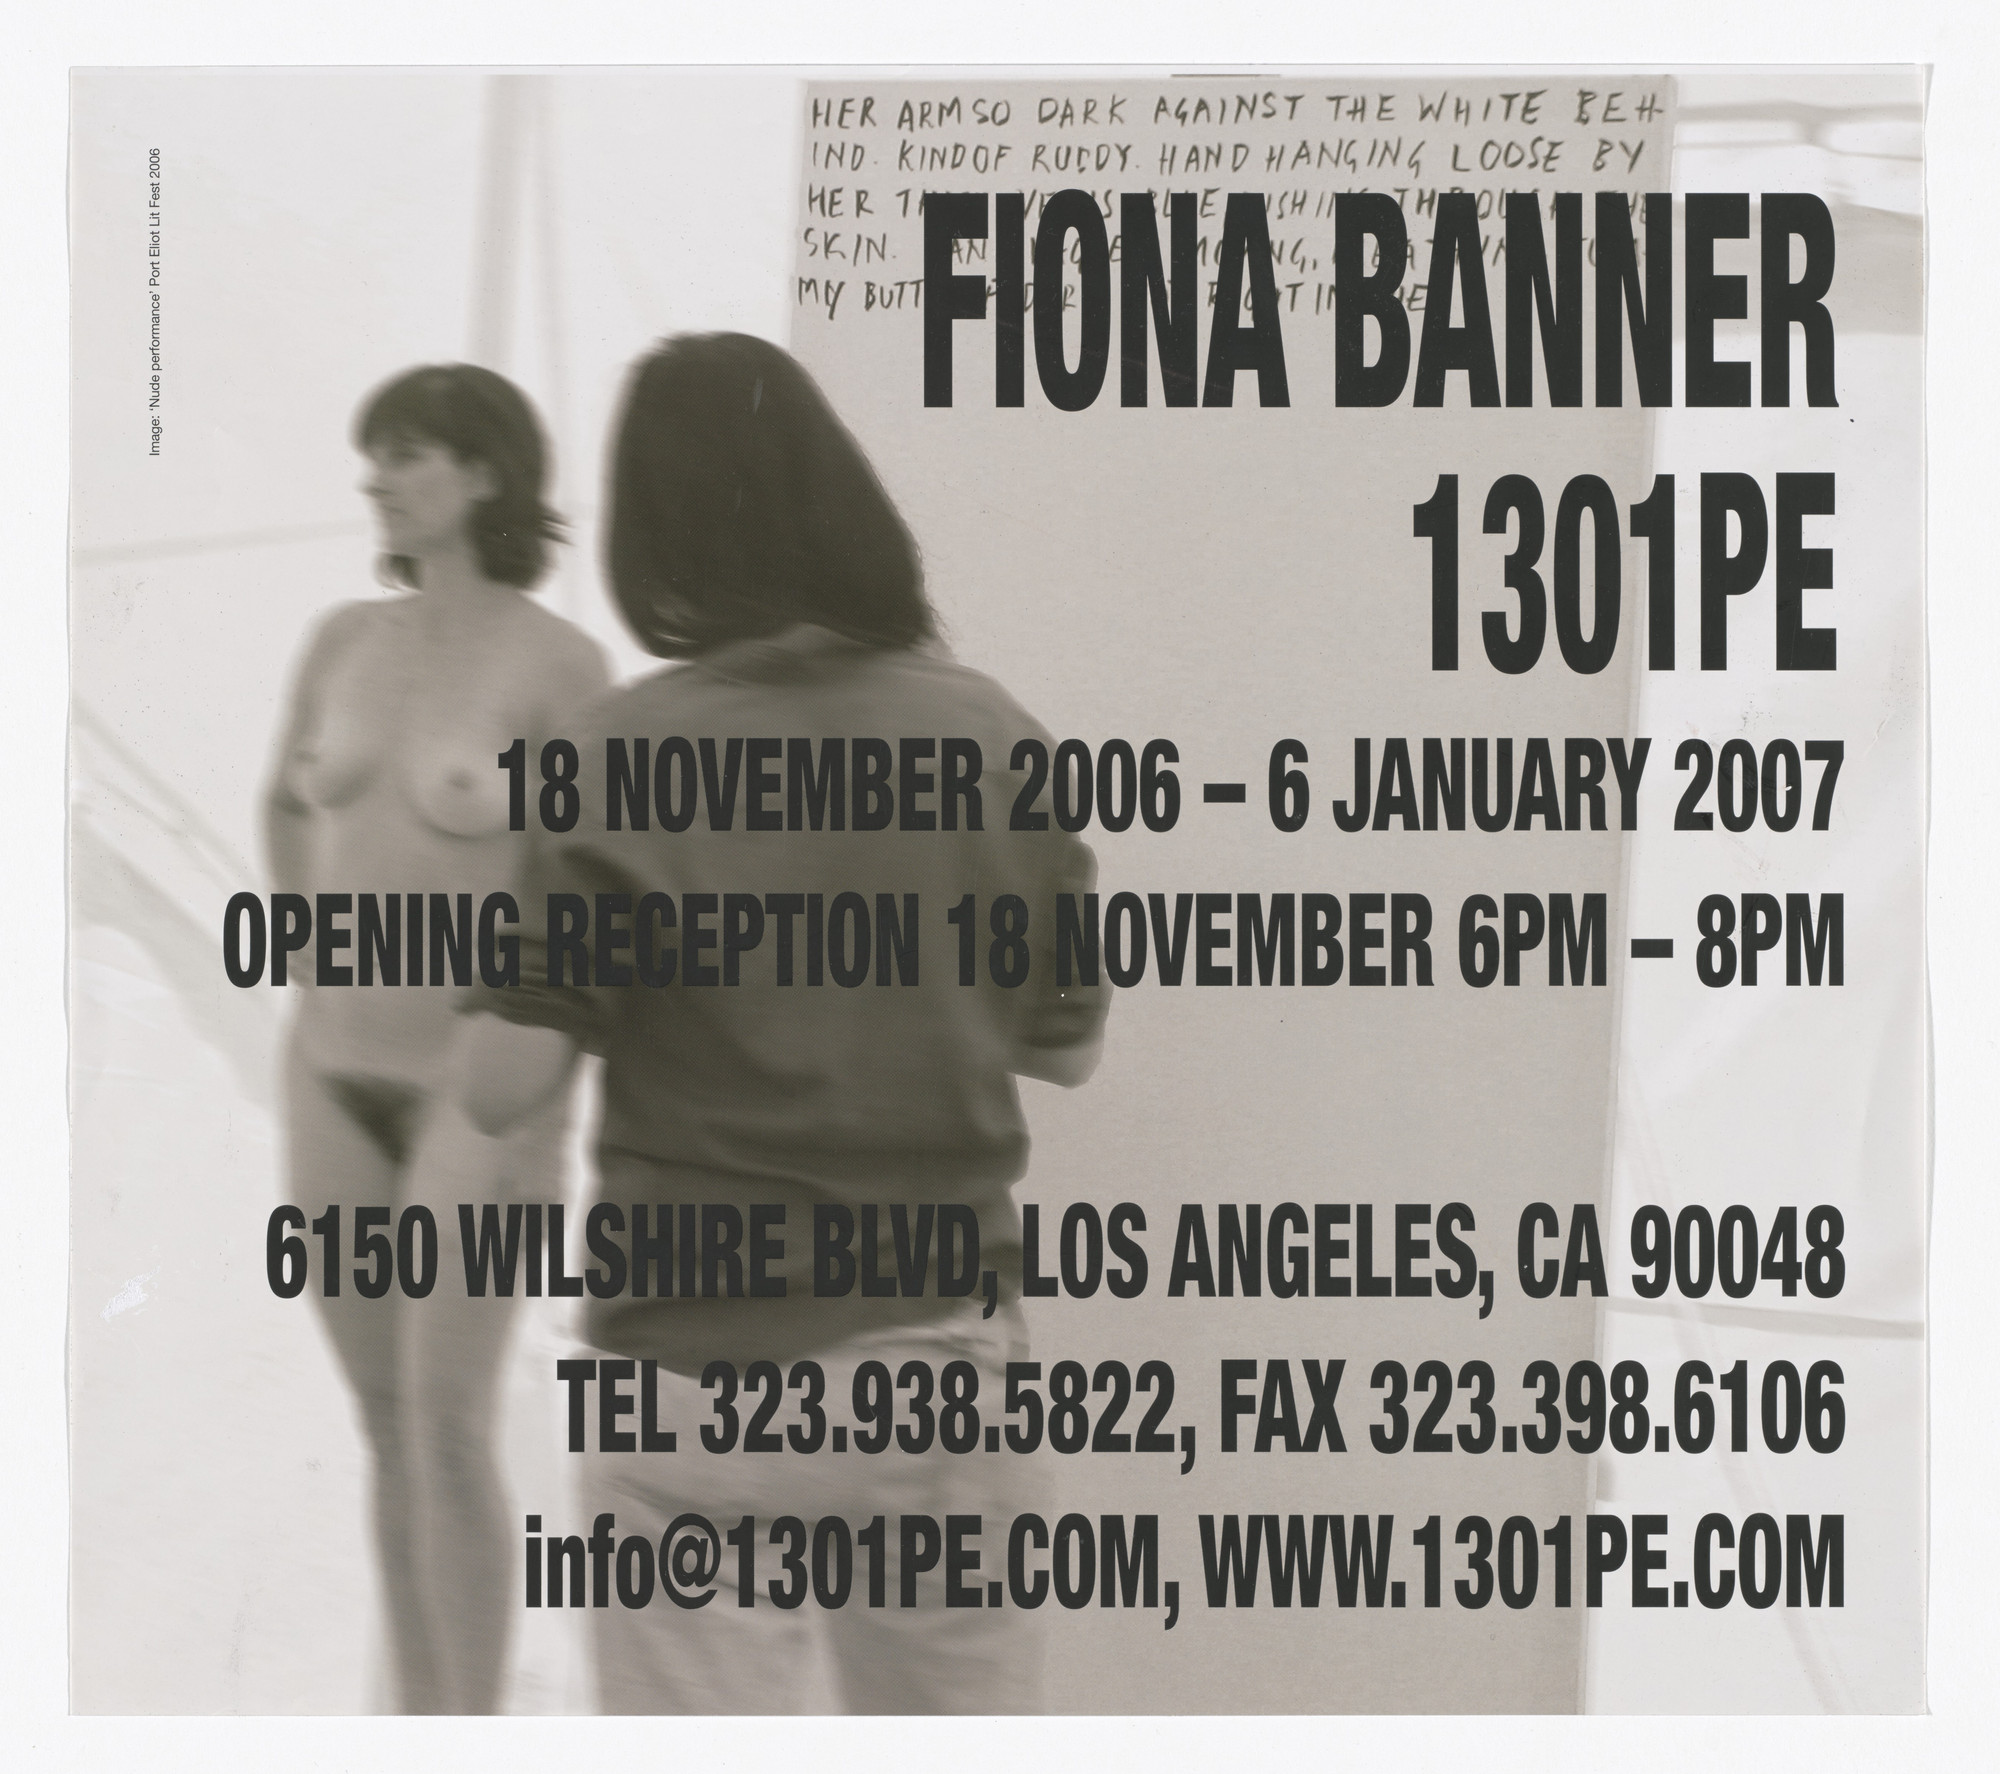 Fiona Banner. Poster for exhibition at 1301PE, Los Angeles, November 18, 2006-January 6, 2007, _Poster for exhibition at 1301PE, Los Angeles, November 18, 2006-January 6, 2007_. 2006